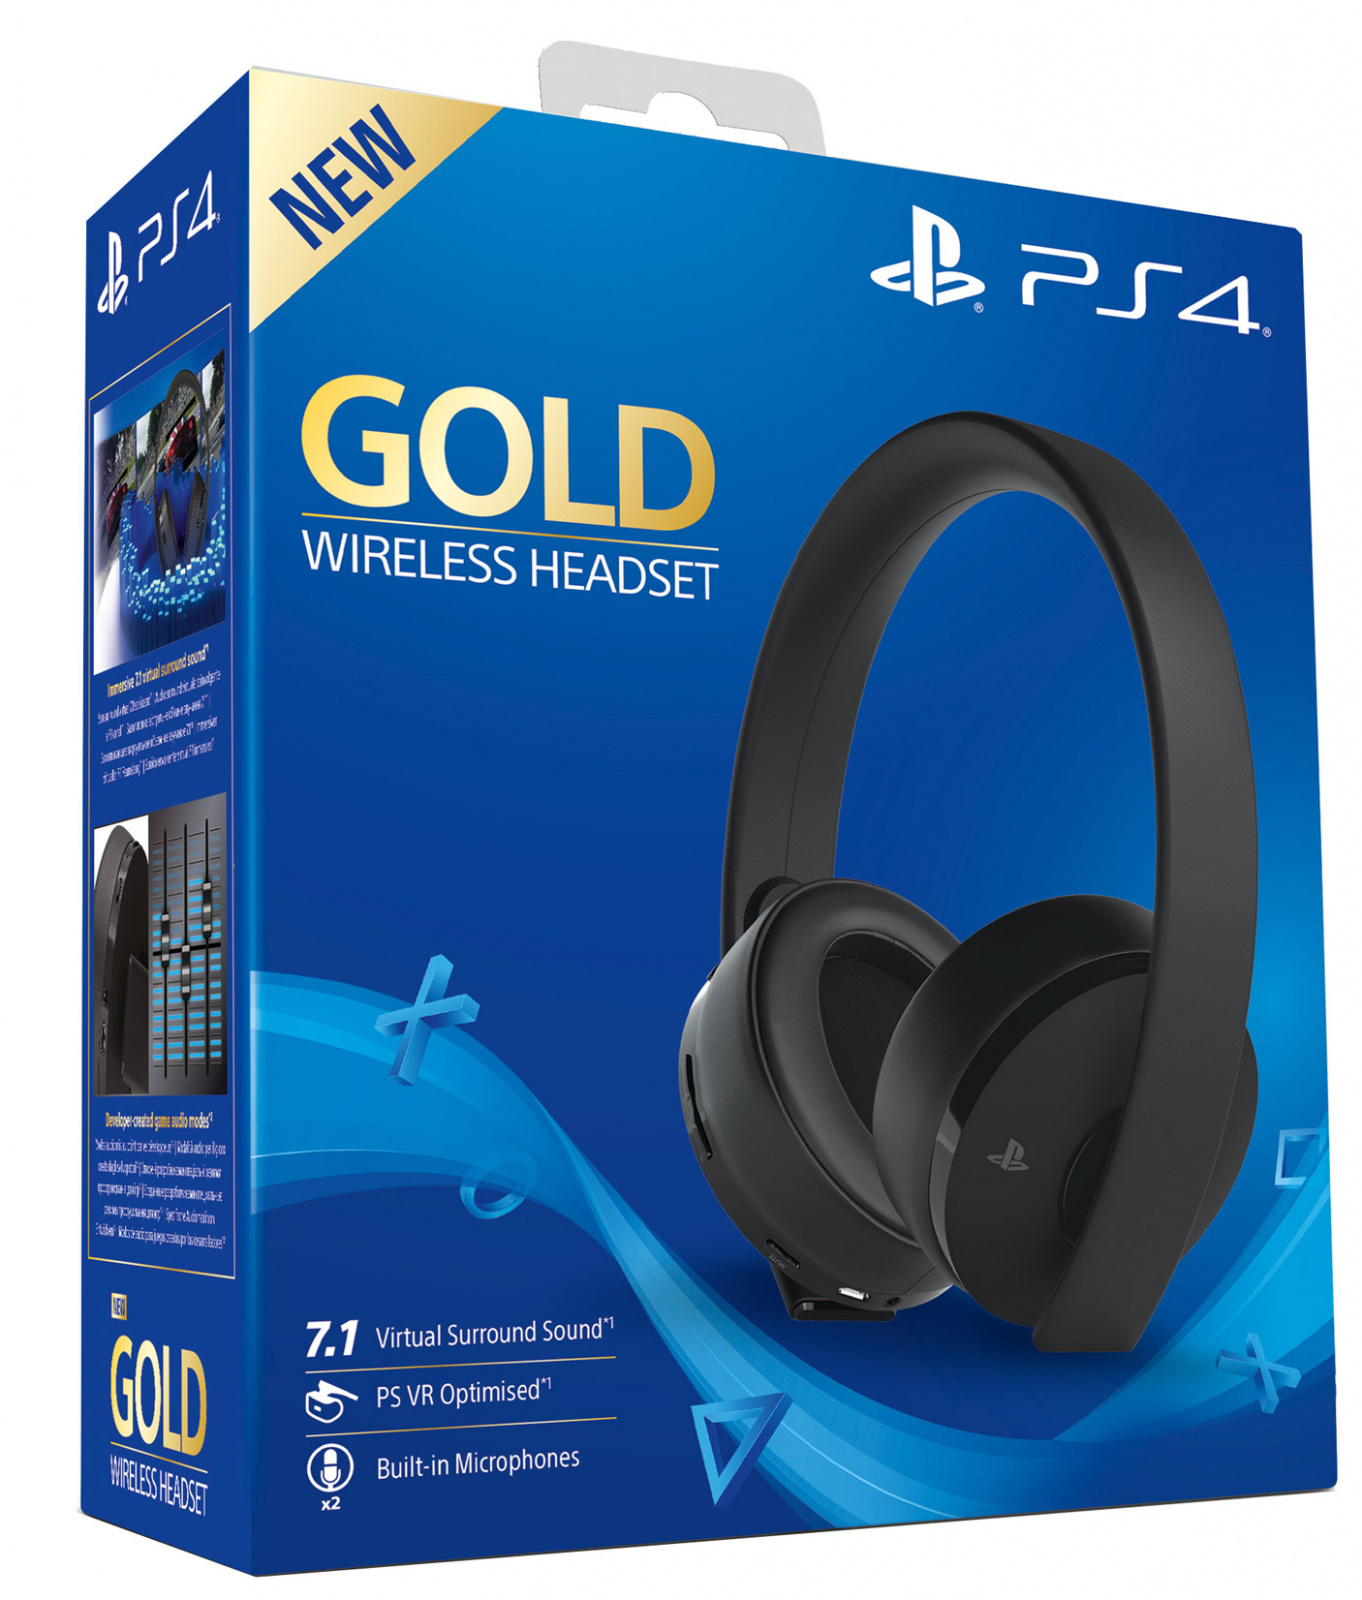 ps4 wireless headset can't hear party chat